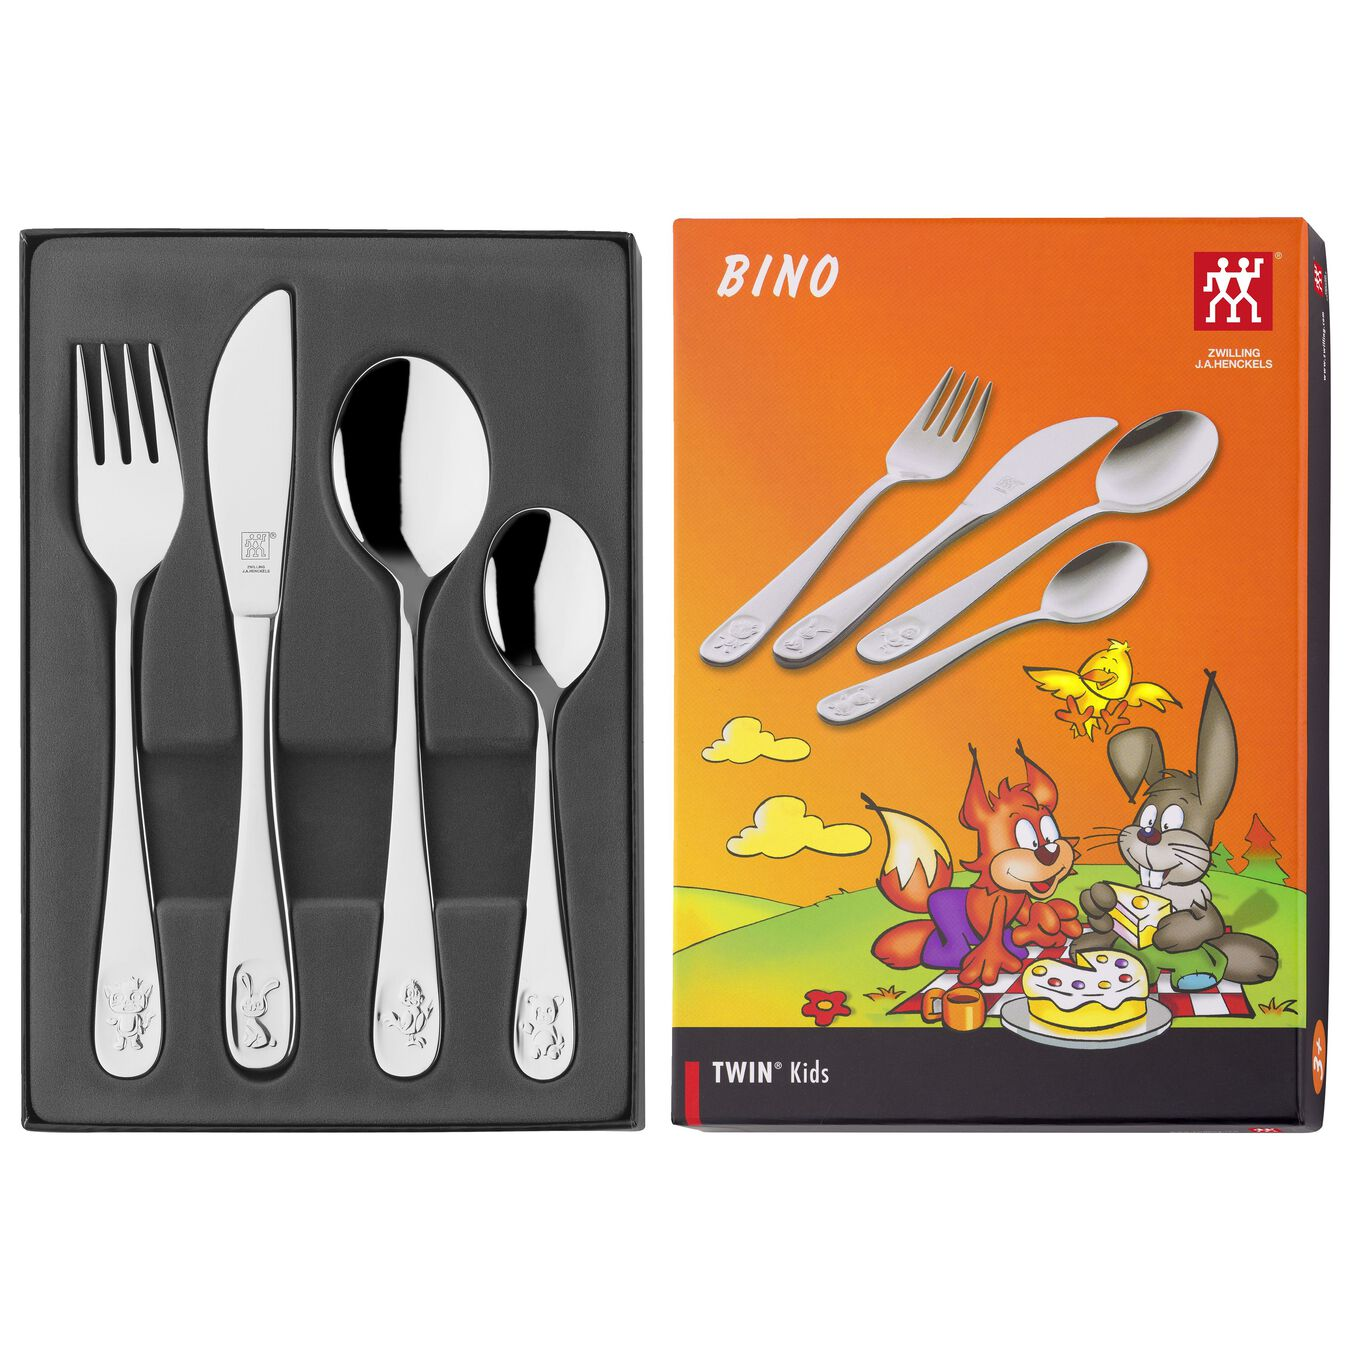 4-pc Flatware Set,,large 3